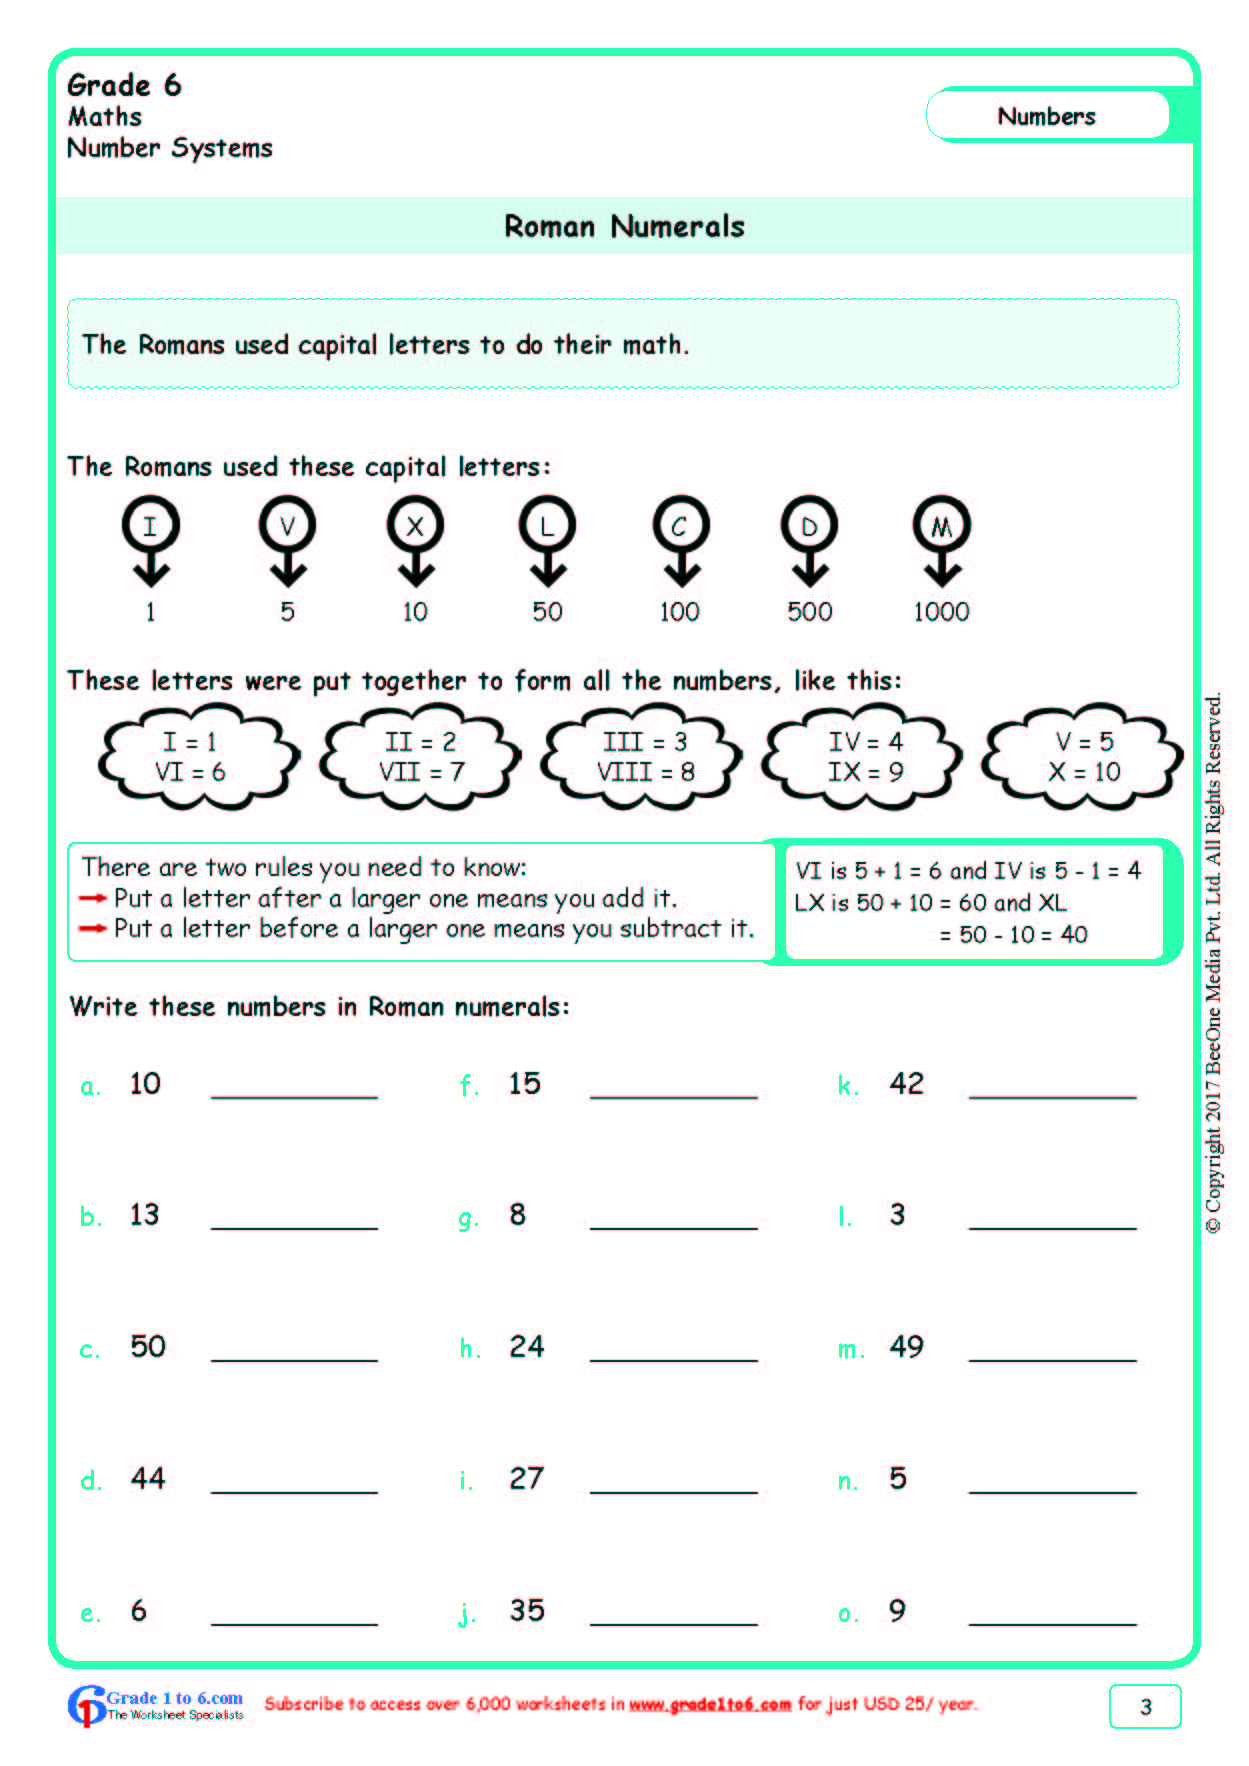 Free Math Worksheets For Grade 6 Class 6 Ib Cbse Icse K12